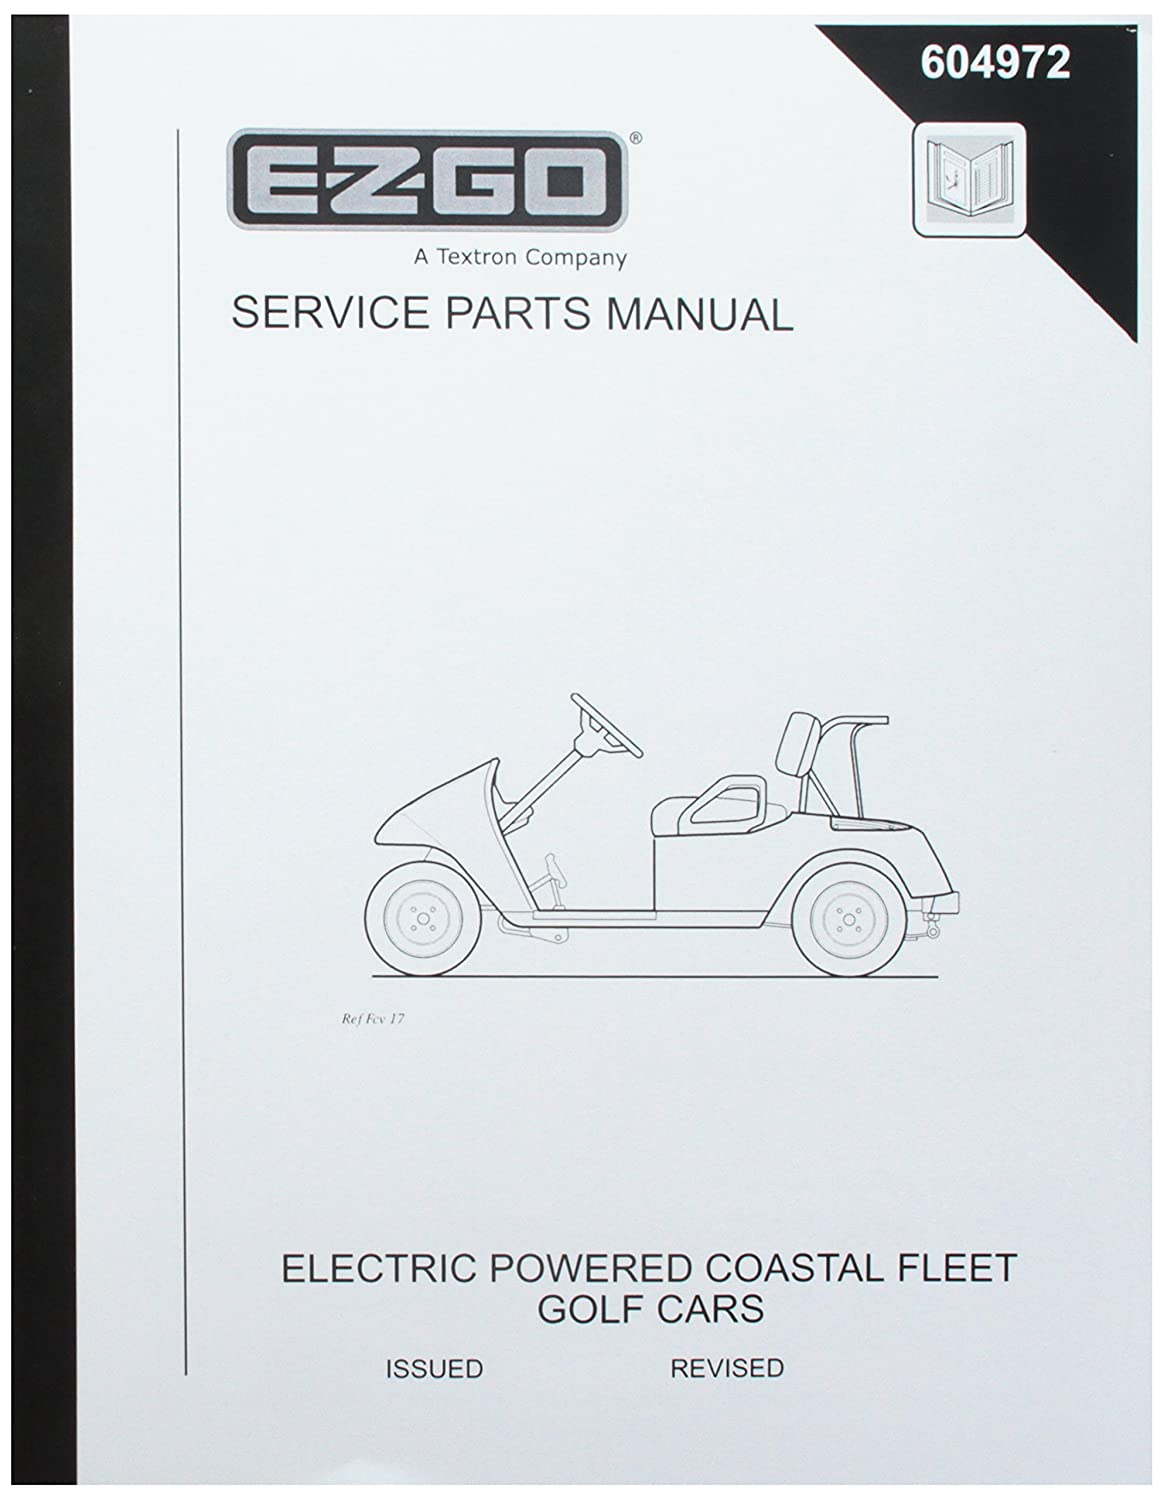 Amazon.com : EZGO 604972 2006 Service Parts Manual for Electric Coastal  Fleet Golf Cars : Outdoor Decorative Fences : Garden & Outdoor